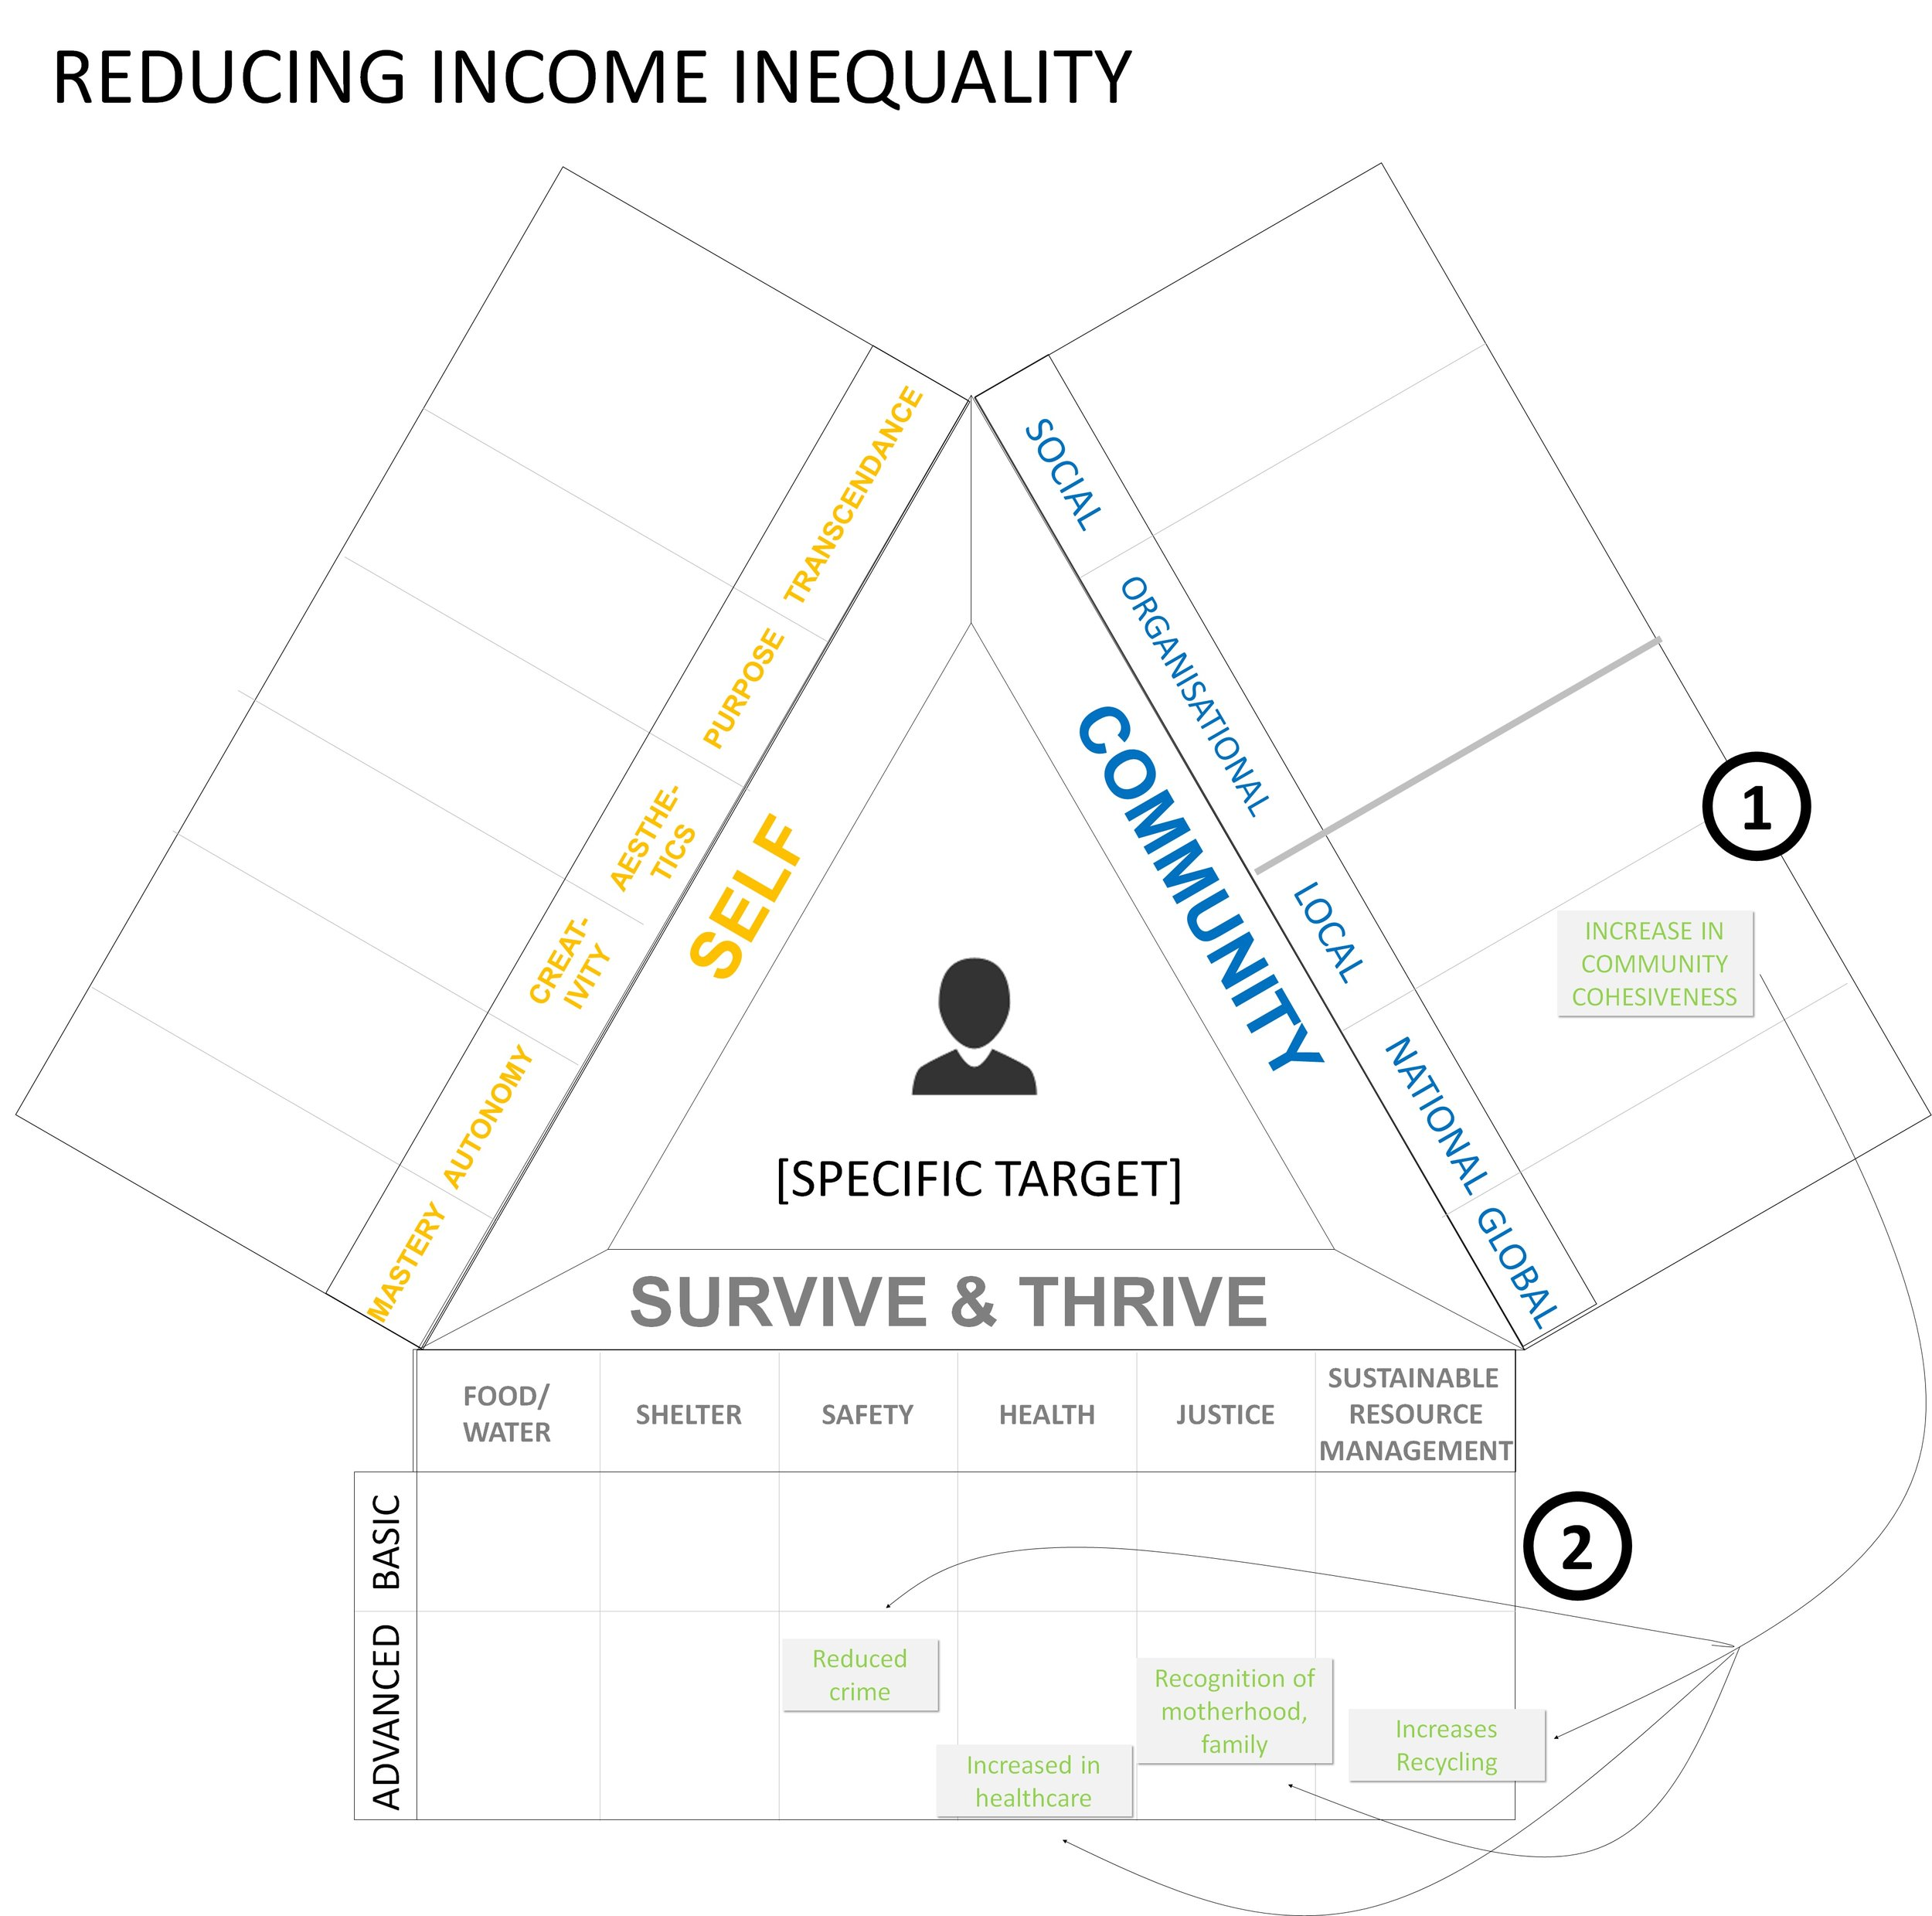 As written about in another  article , the main result of reducing income inequality is to increase community cohesiveness (1), but increased community cohesiveness in turn increases a number of other social aspects in healthcare, safety, social justice, the environment, etc. (2).